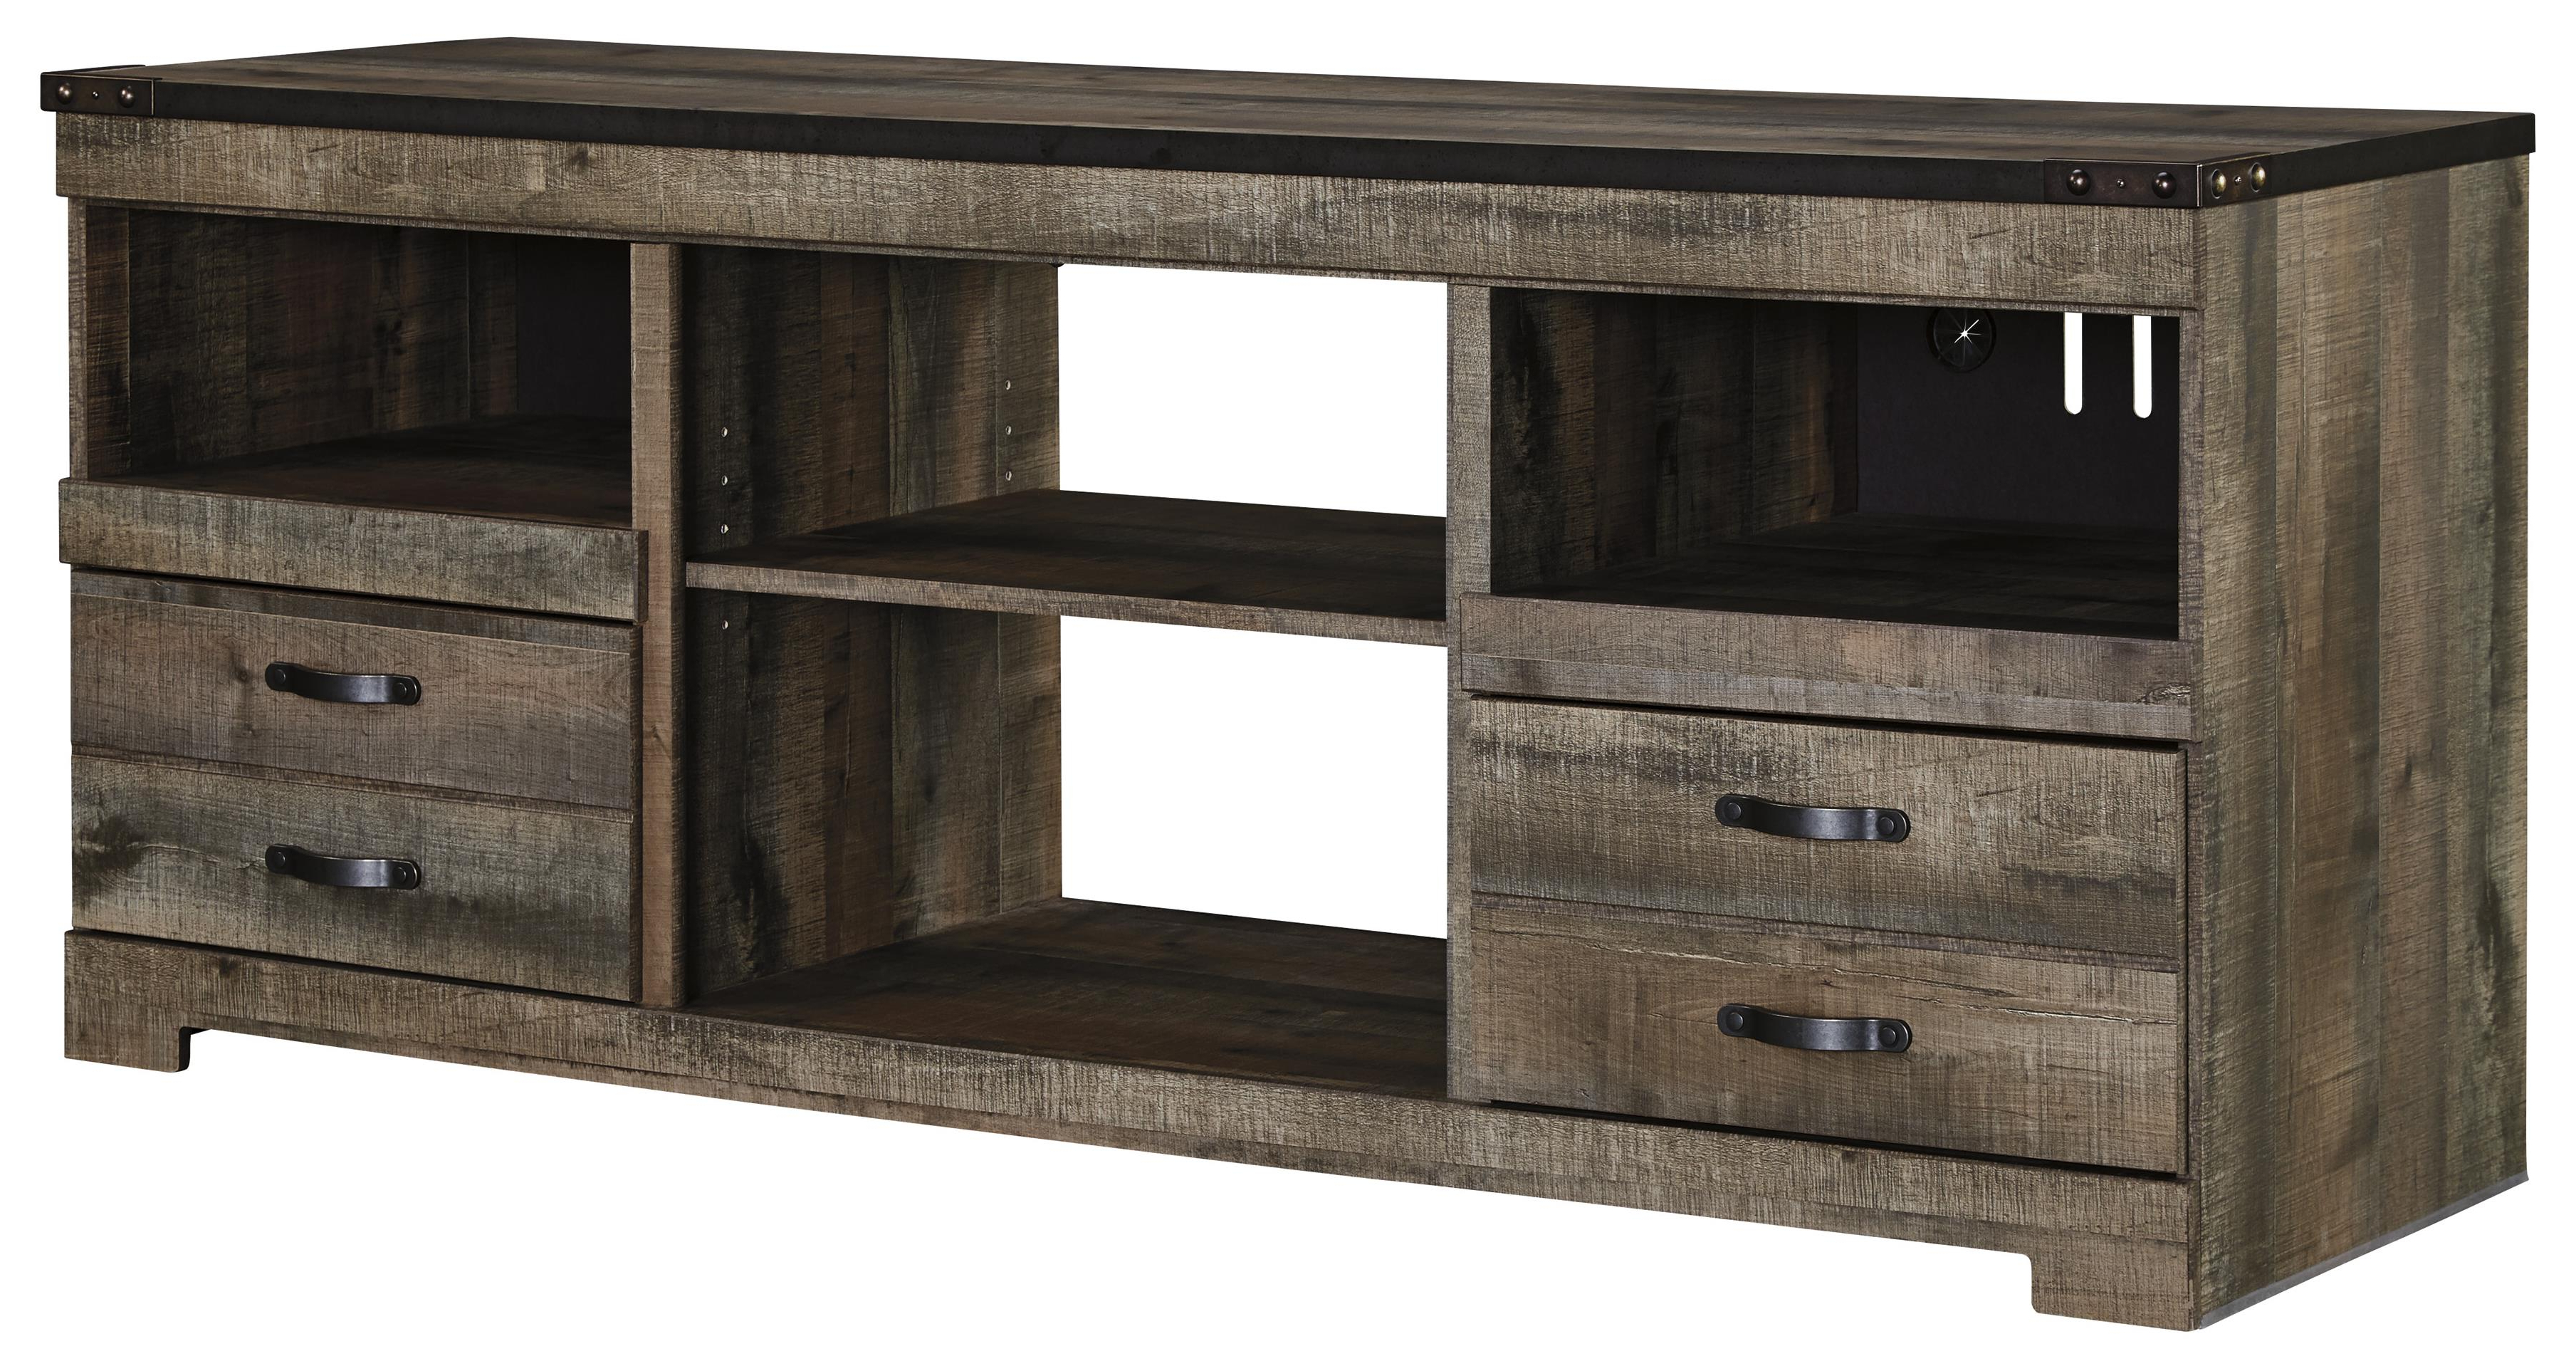 Best And Newest Rustic Furniture Tv Stands Throughout Ashley Signature Design Trinell W446 68 Rustic Large Tv Stand With (View 2 of 20)